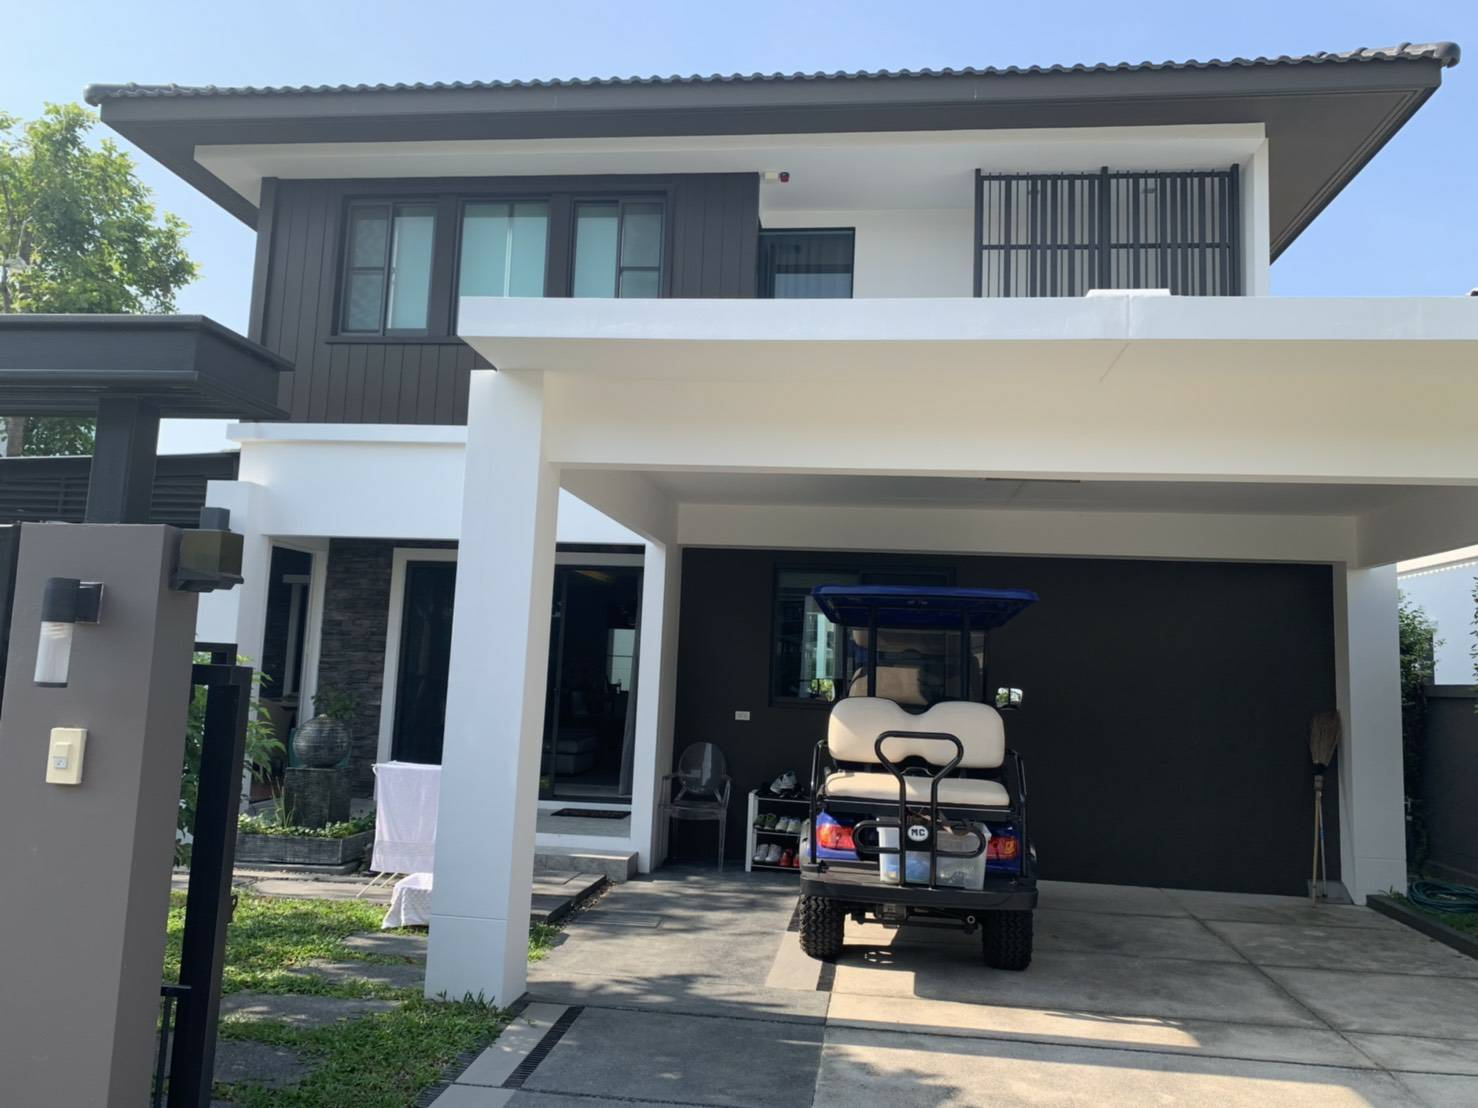 For SaleHouseBangna, Lasalle, Bearing : 2 storey detached house for sale, area 64 square meters, 3 bedrooms, 3 bathrooms, fully furnished, Bangna Trad Road, KM.7, Mega Bang Trat, price 13 million baht, interested to contact you, month 086-367-4148